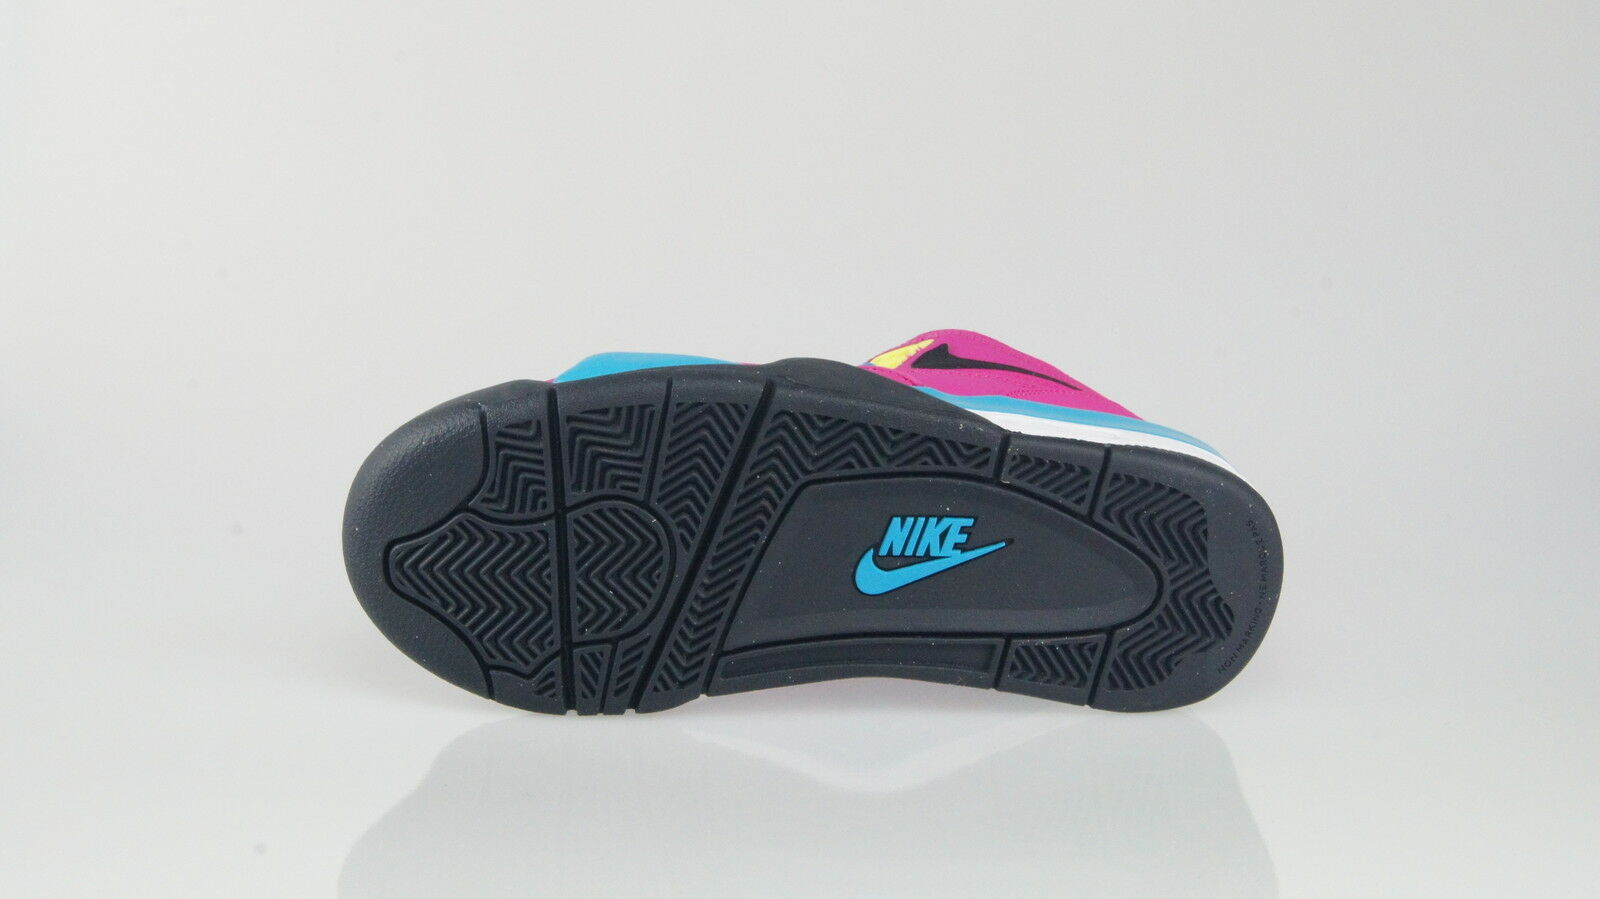 check out c1d8f e09d9 ... NIKE AIR FLIGHT 89 89 89 Size 38 (6Y) 583dda  For Business